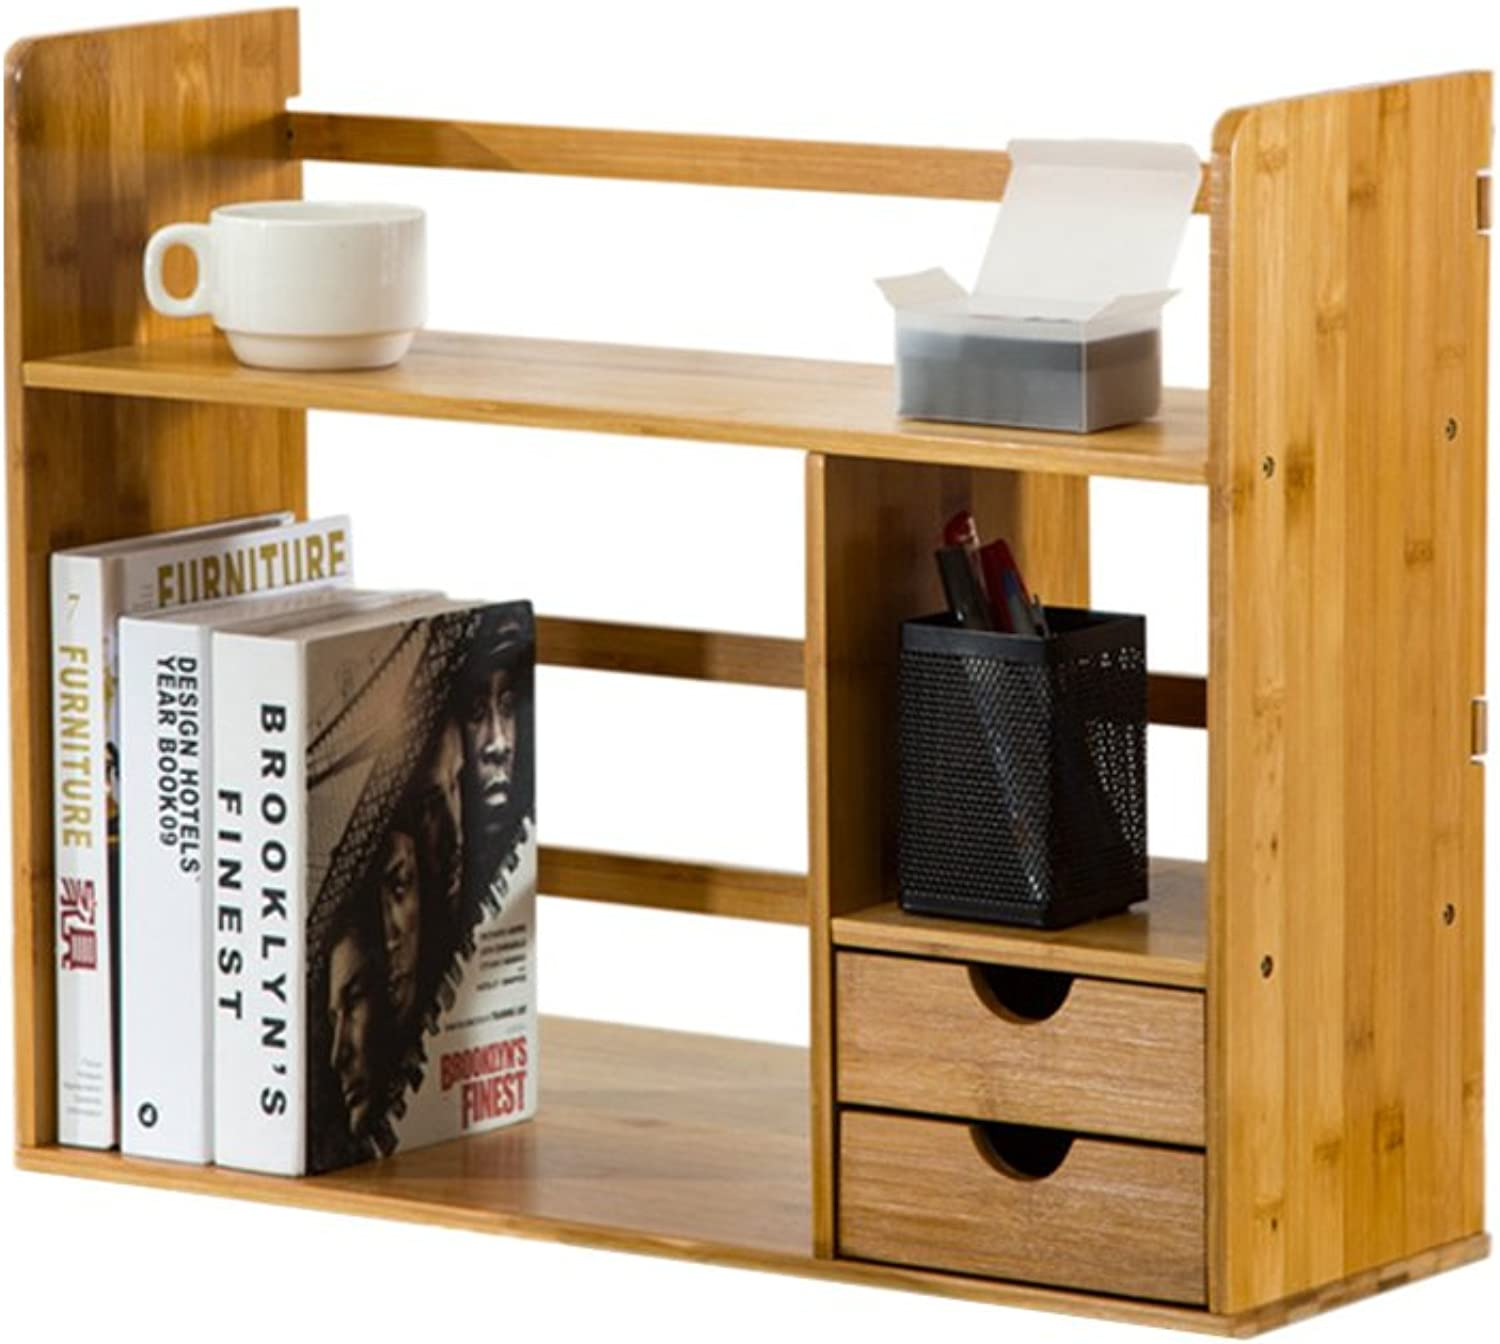 Bookcases, Cabinets Shelves Simple Table Rack with Drawers Student Creative Bookshelf Desk Solid Wood Storage Desktop Bookshelf Flower Stand Decoration Storage Rack Penholder (color   48cm)